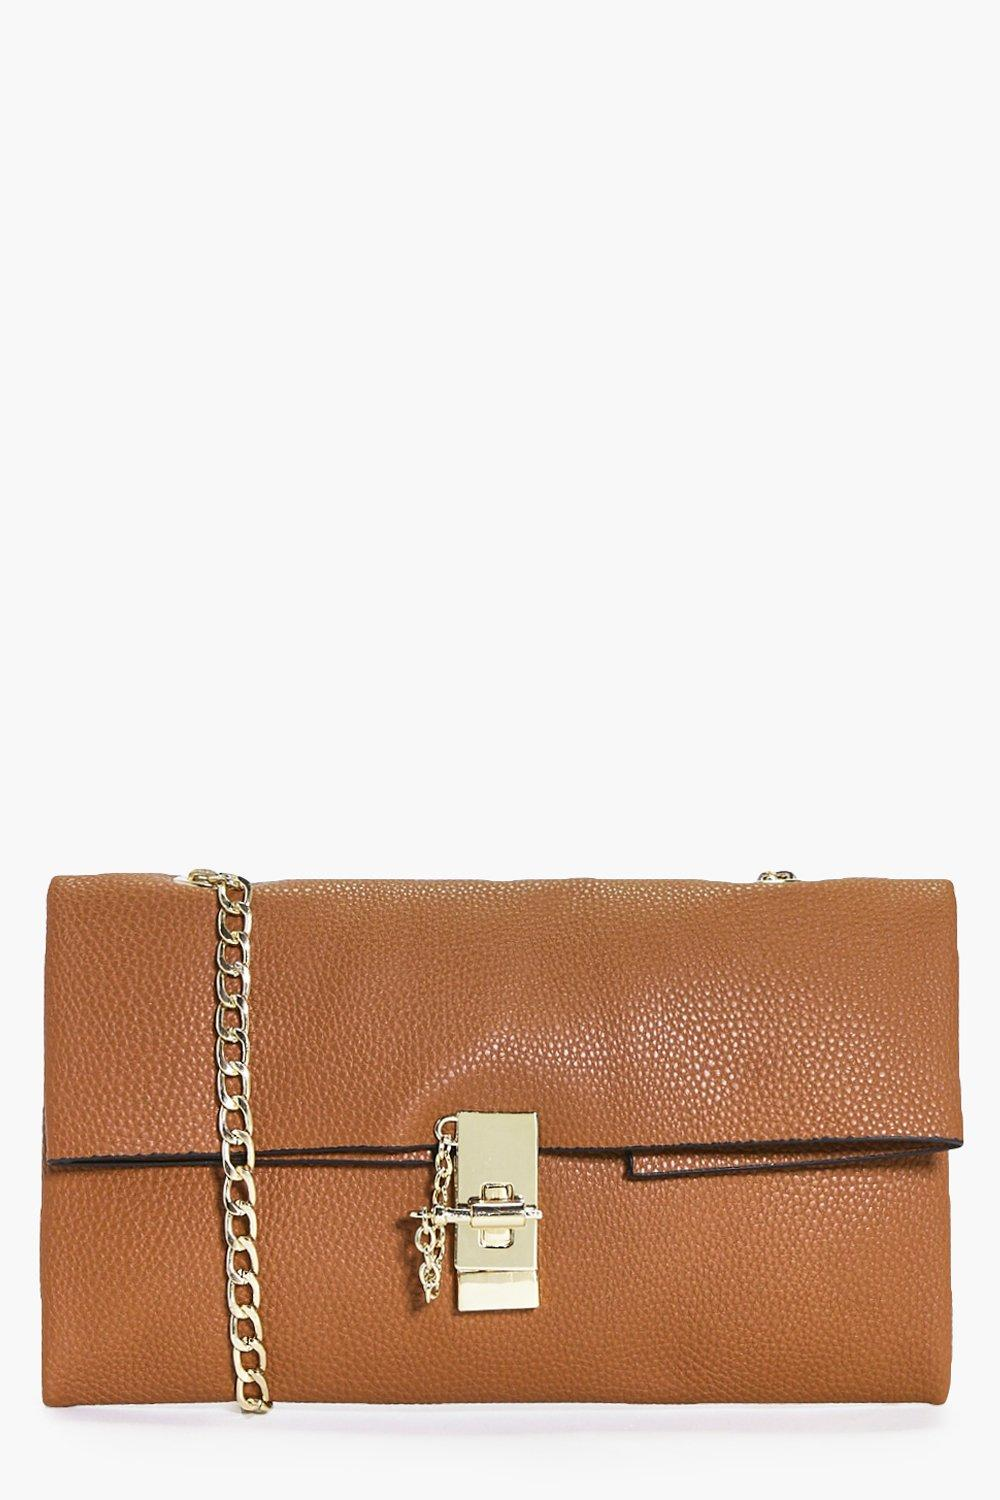 Julia Turn Lock Chain Strap Clutch Bag